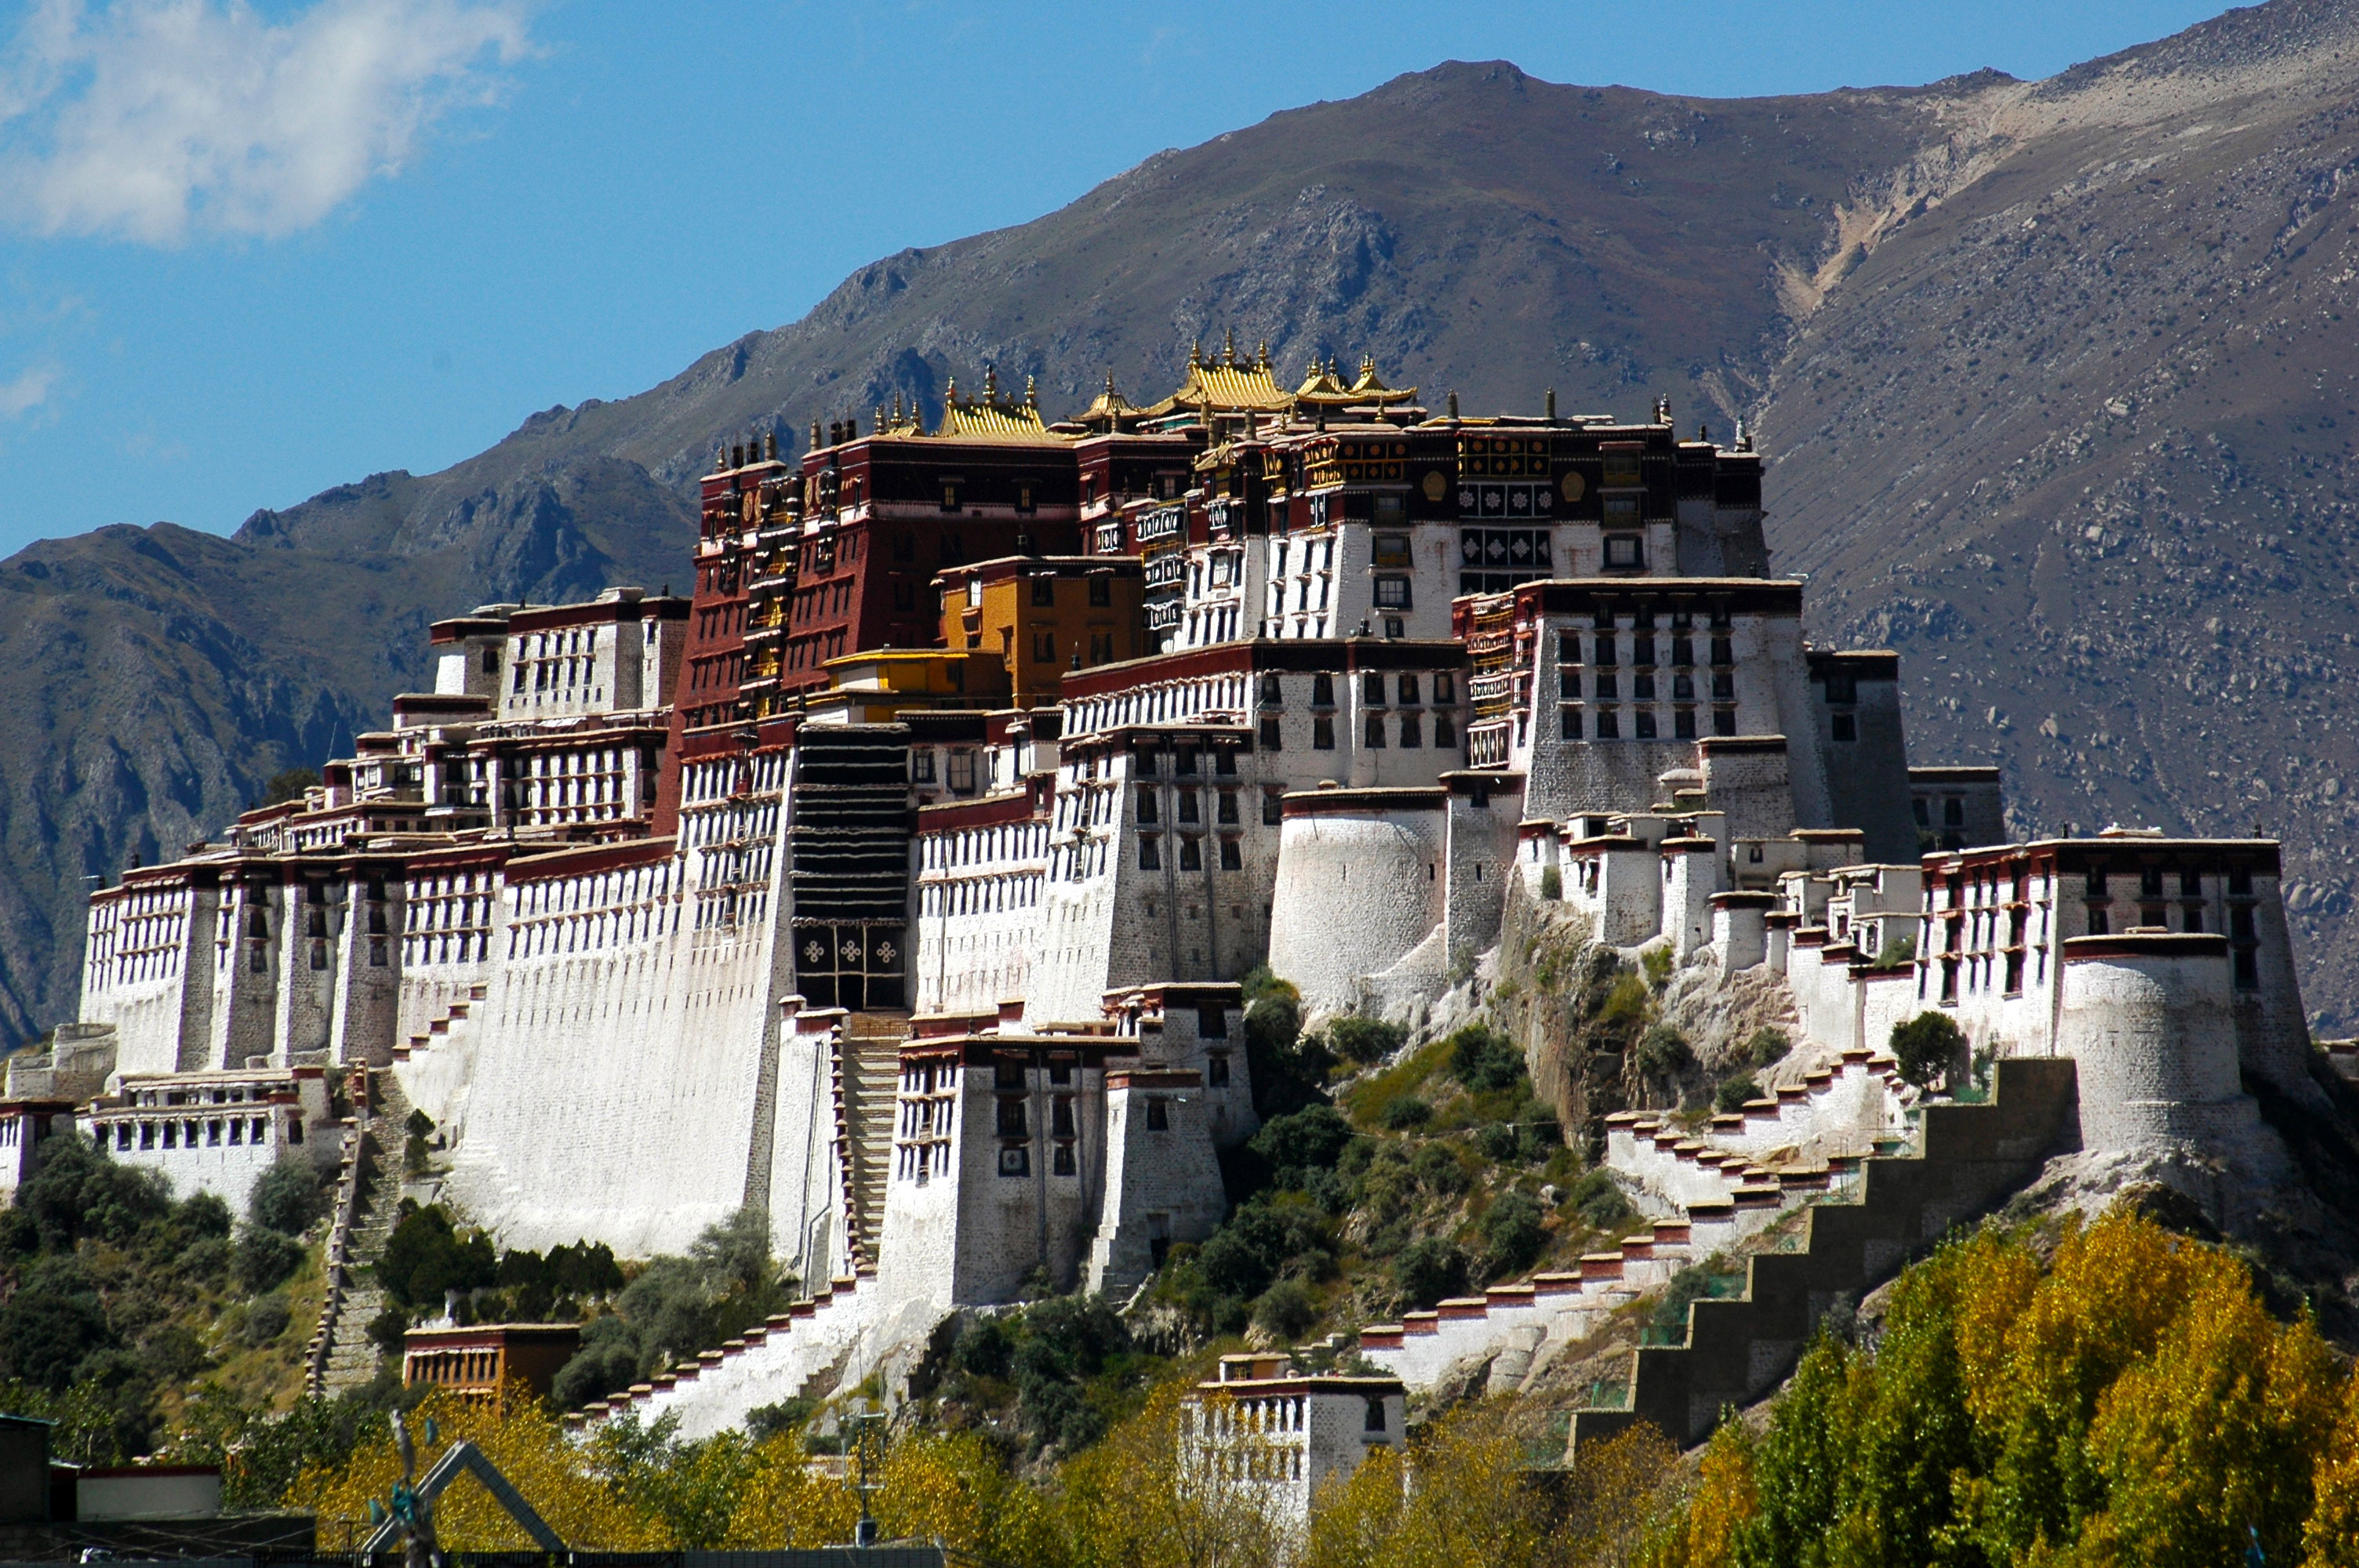 Prince Gong's Palace Beijing, Explore the forbidden city - Highlights of Lhasa 9 Days   Icefall ...